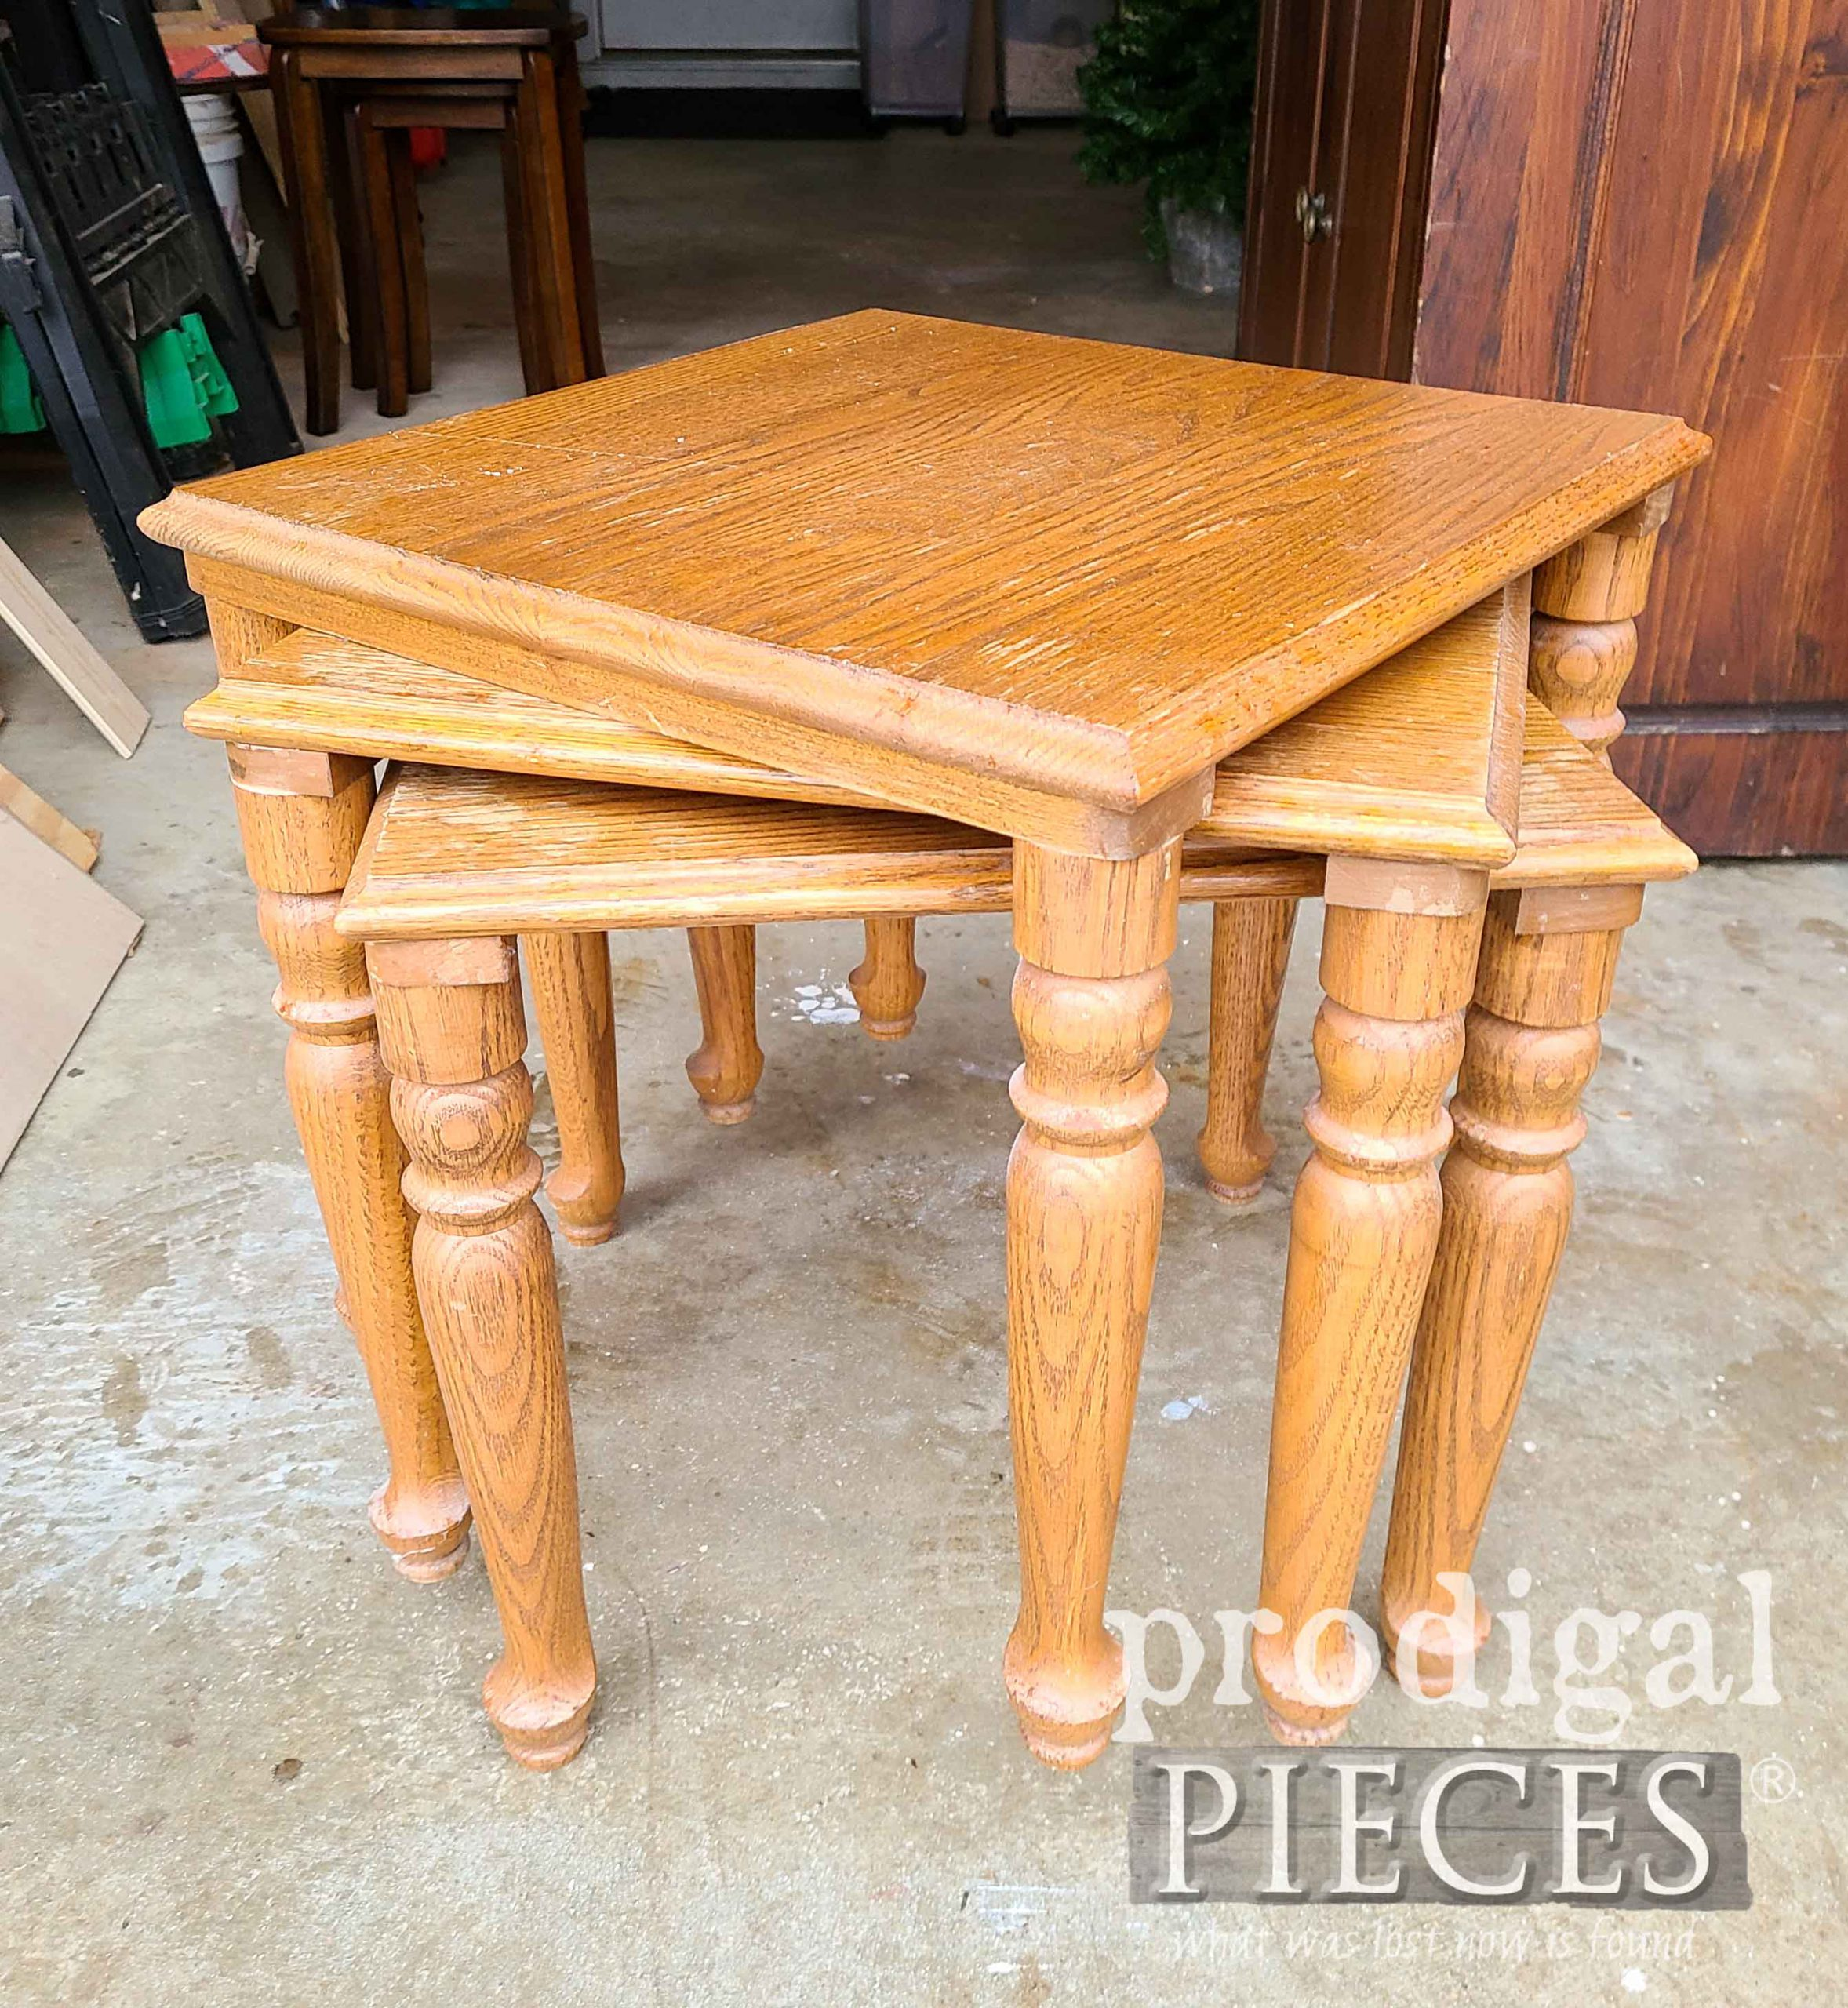 Vintage Stacking Tables Before Makeover by Prodigal Pieces | prodigalpieces.com